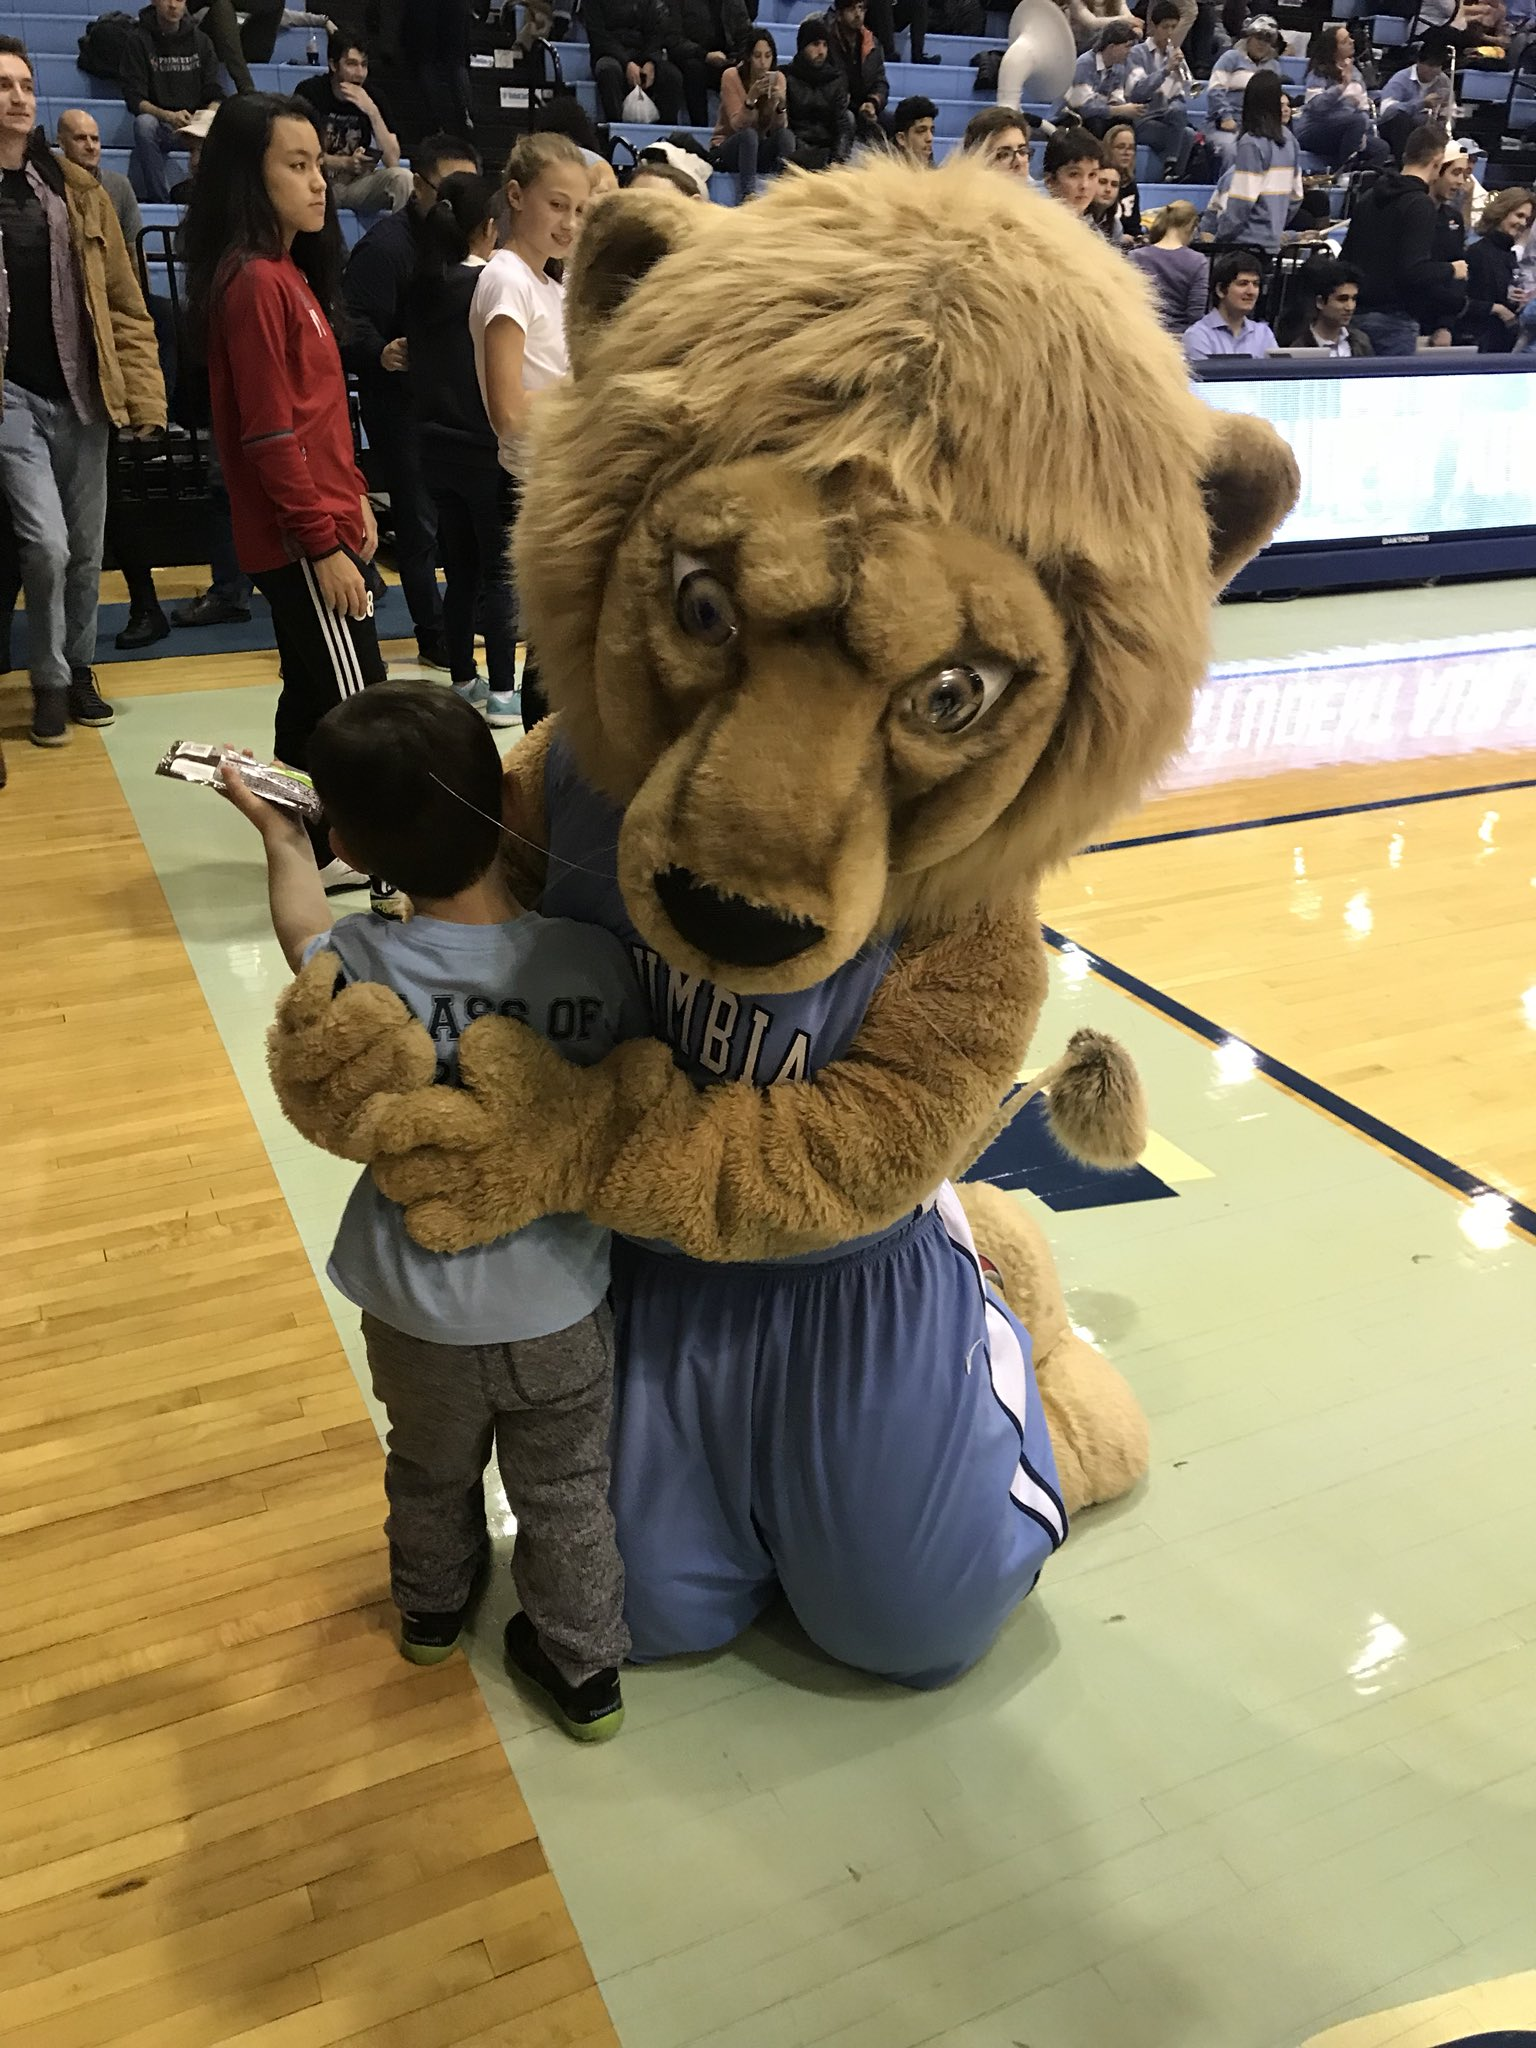 A tremendous night, hanging with the family court side at Levien for @Columbia vs Princeton hoops. https://t.co/pzplo4vGcd